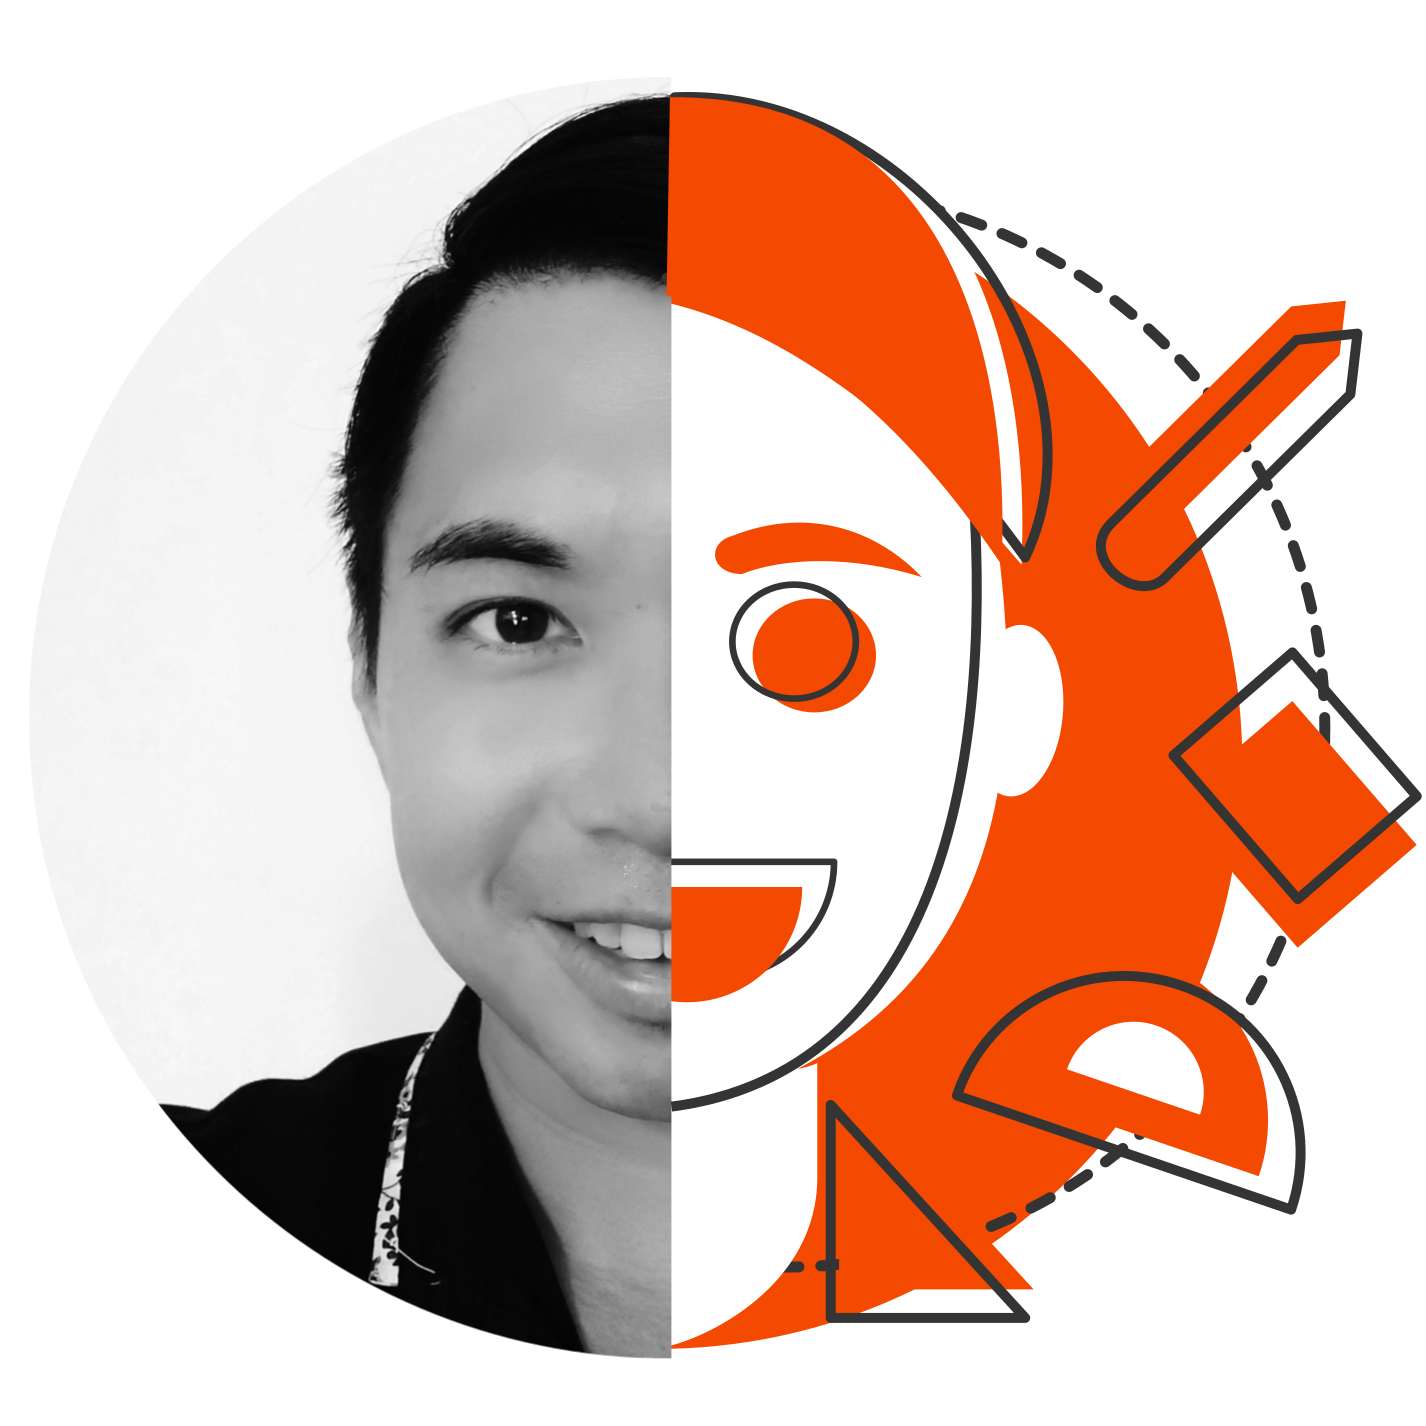 John Poh, senior graphic designer for businesses and brands